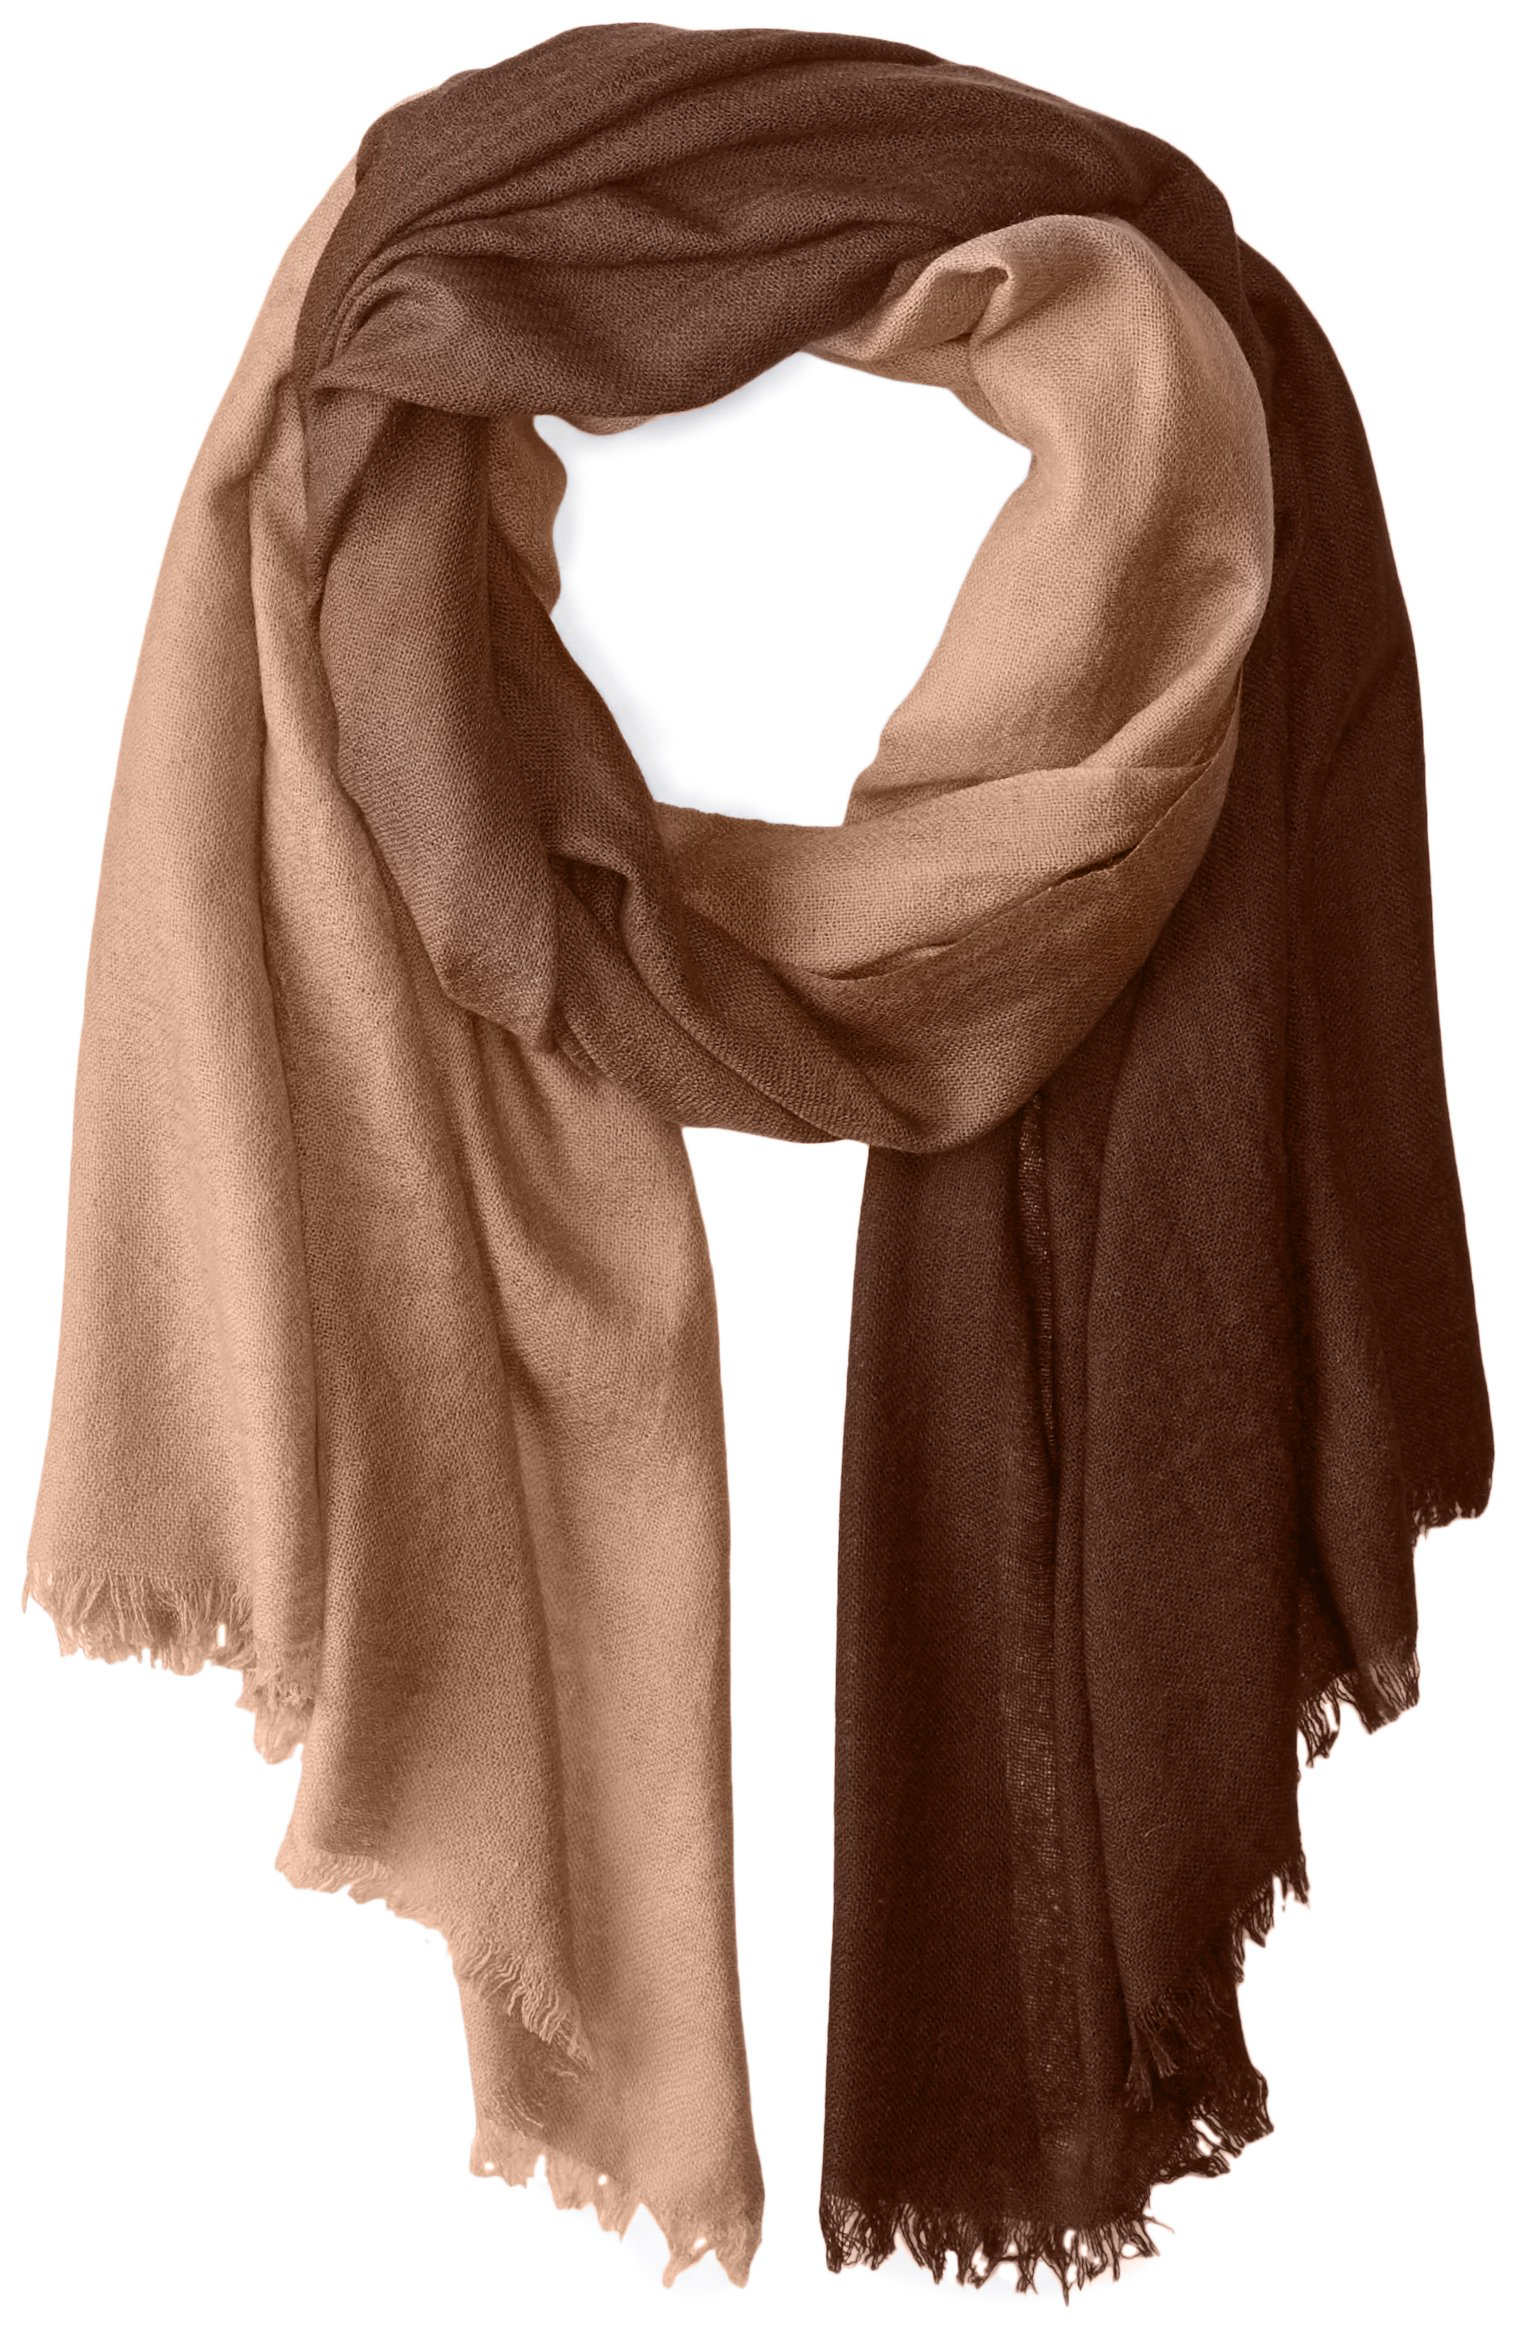 La Fiorentina Women's Cashmere Blend Lightweight Ombre Scarf with Fringe, Mocha, One Size